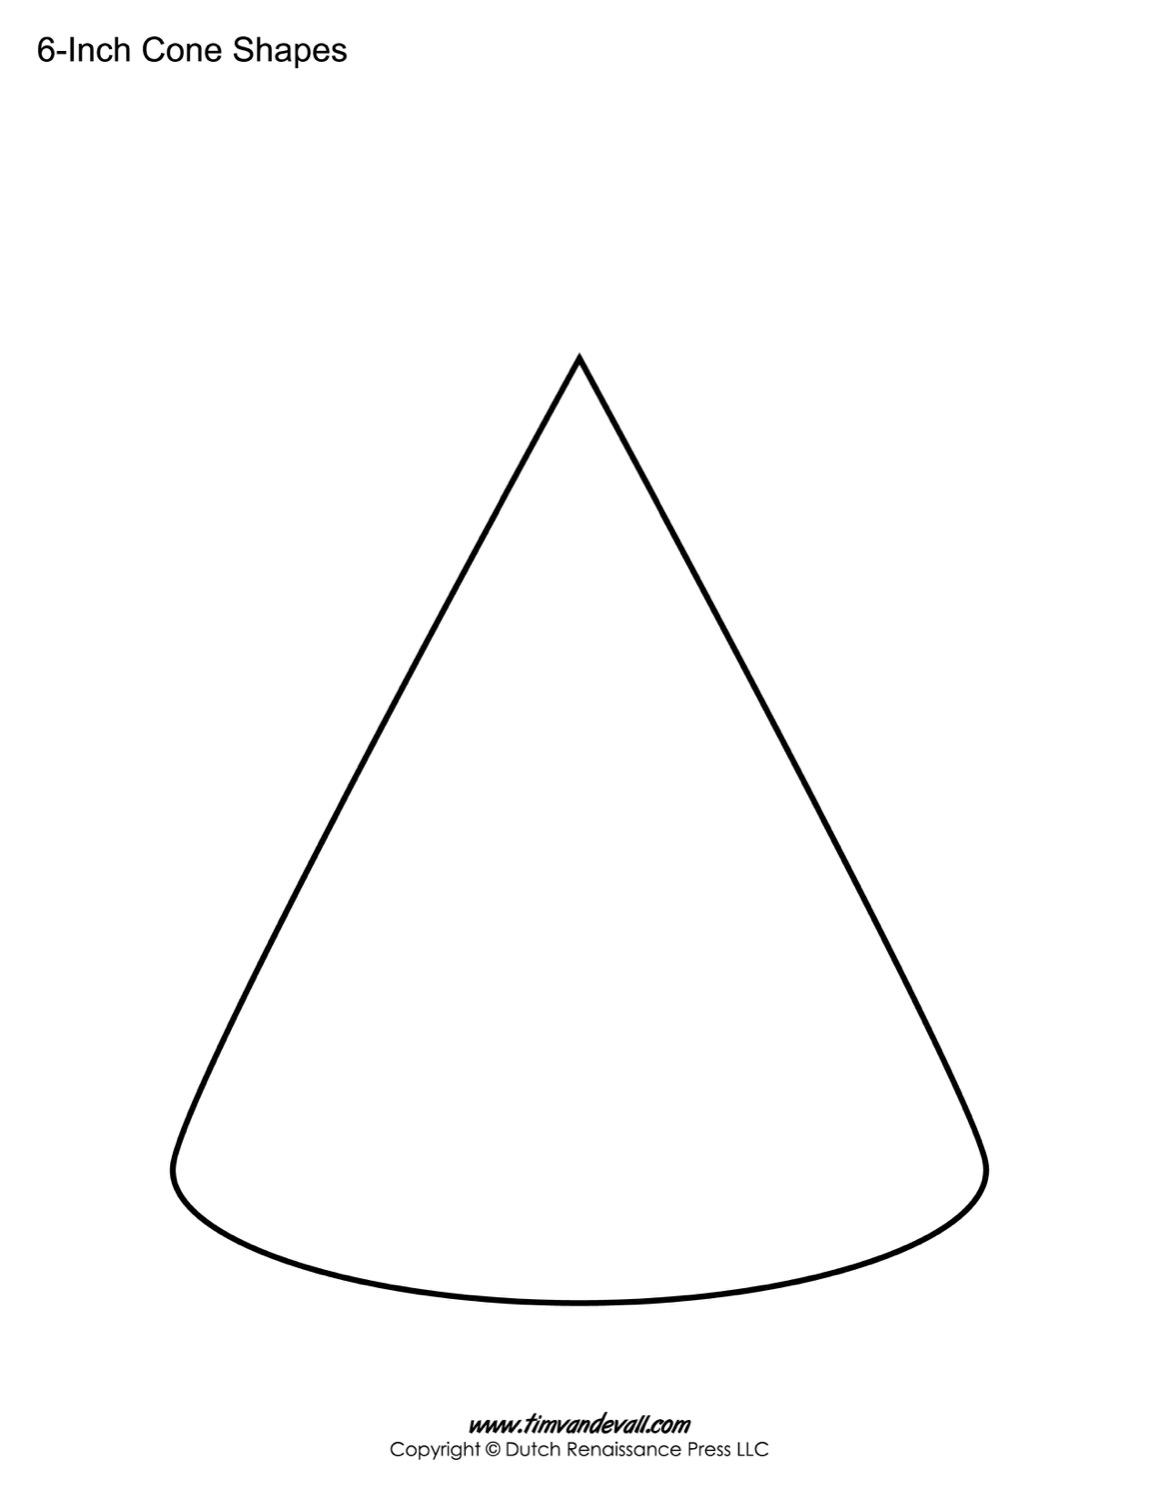 Cone Templates | Free Printable Cone Shape PDFs